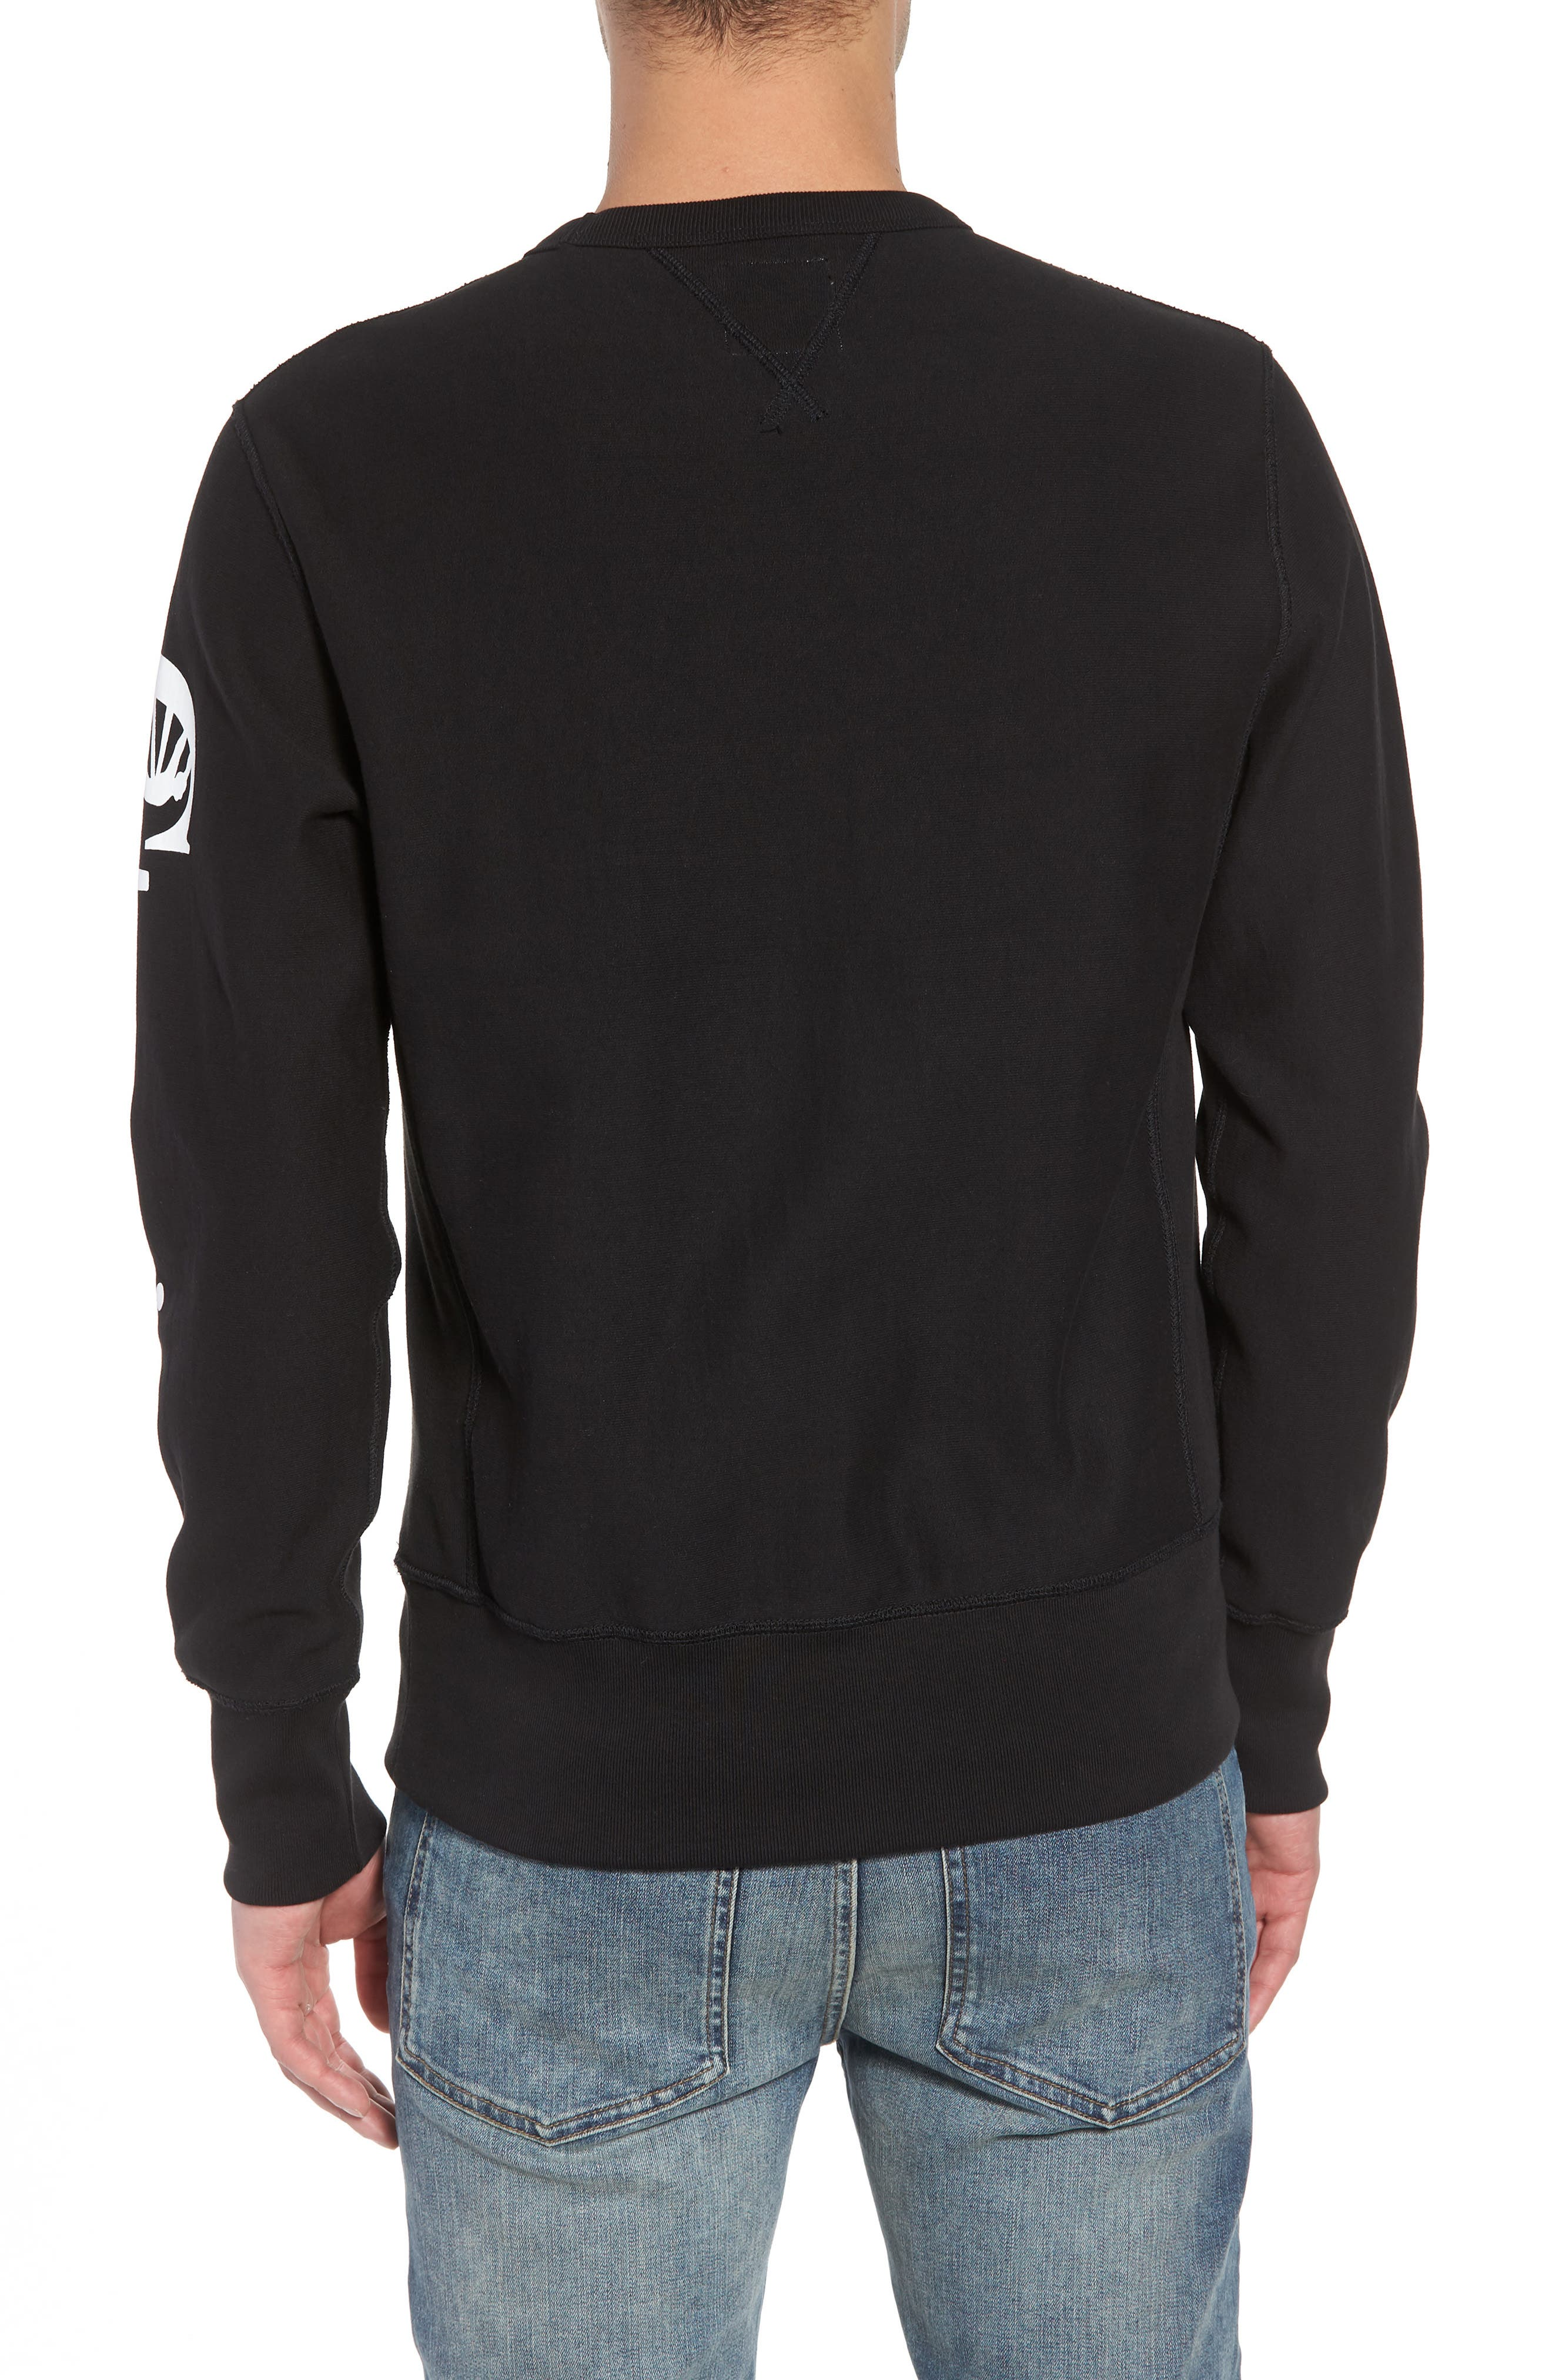 TODD SNYDER,                             + Champion Graphic Sleeve Sweatshirt,                             Alternate thumbnail 2, color,                             001